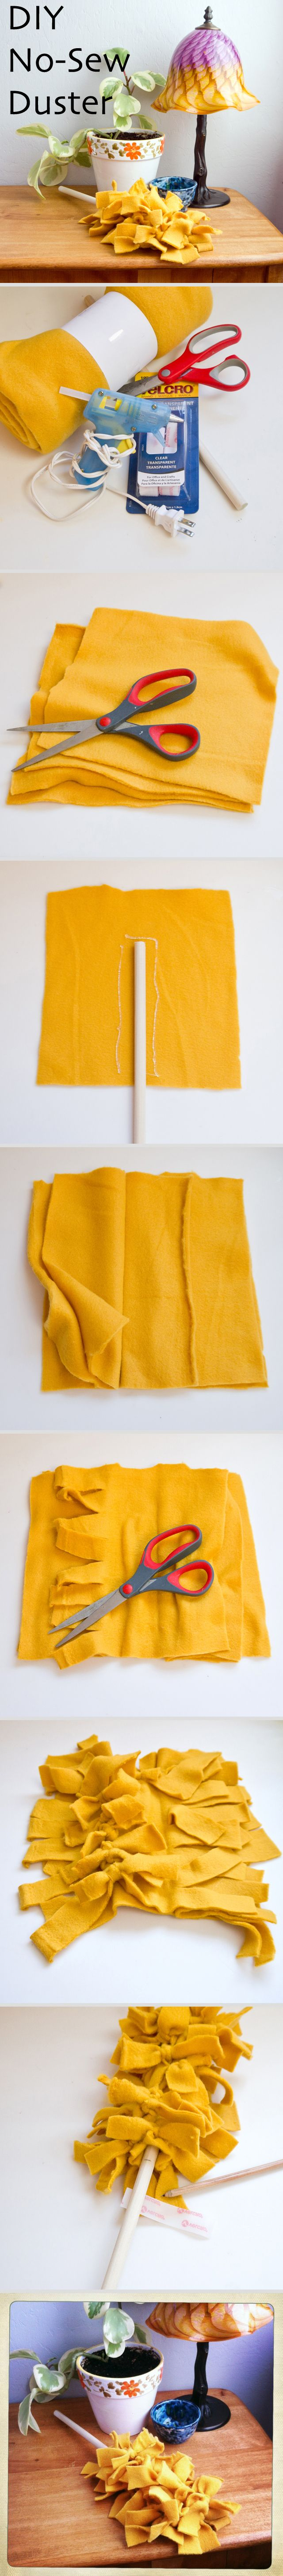 How to make your own swiffer duster! i'd probably use an old t-shirt rather than buy new fabric to clean with